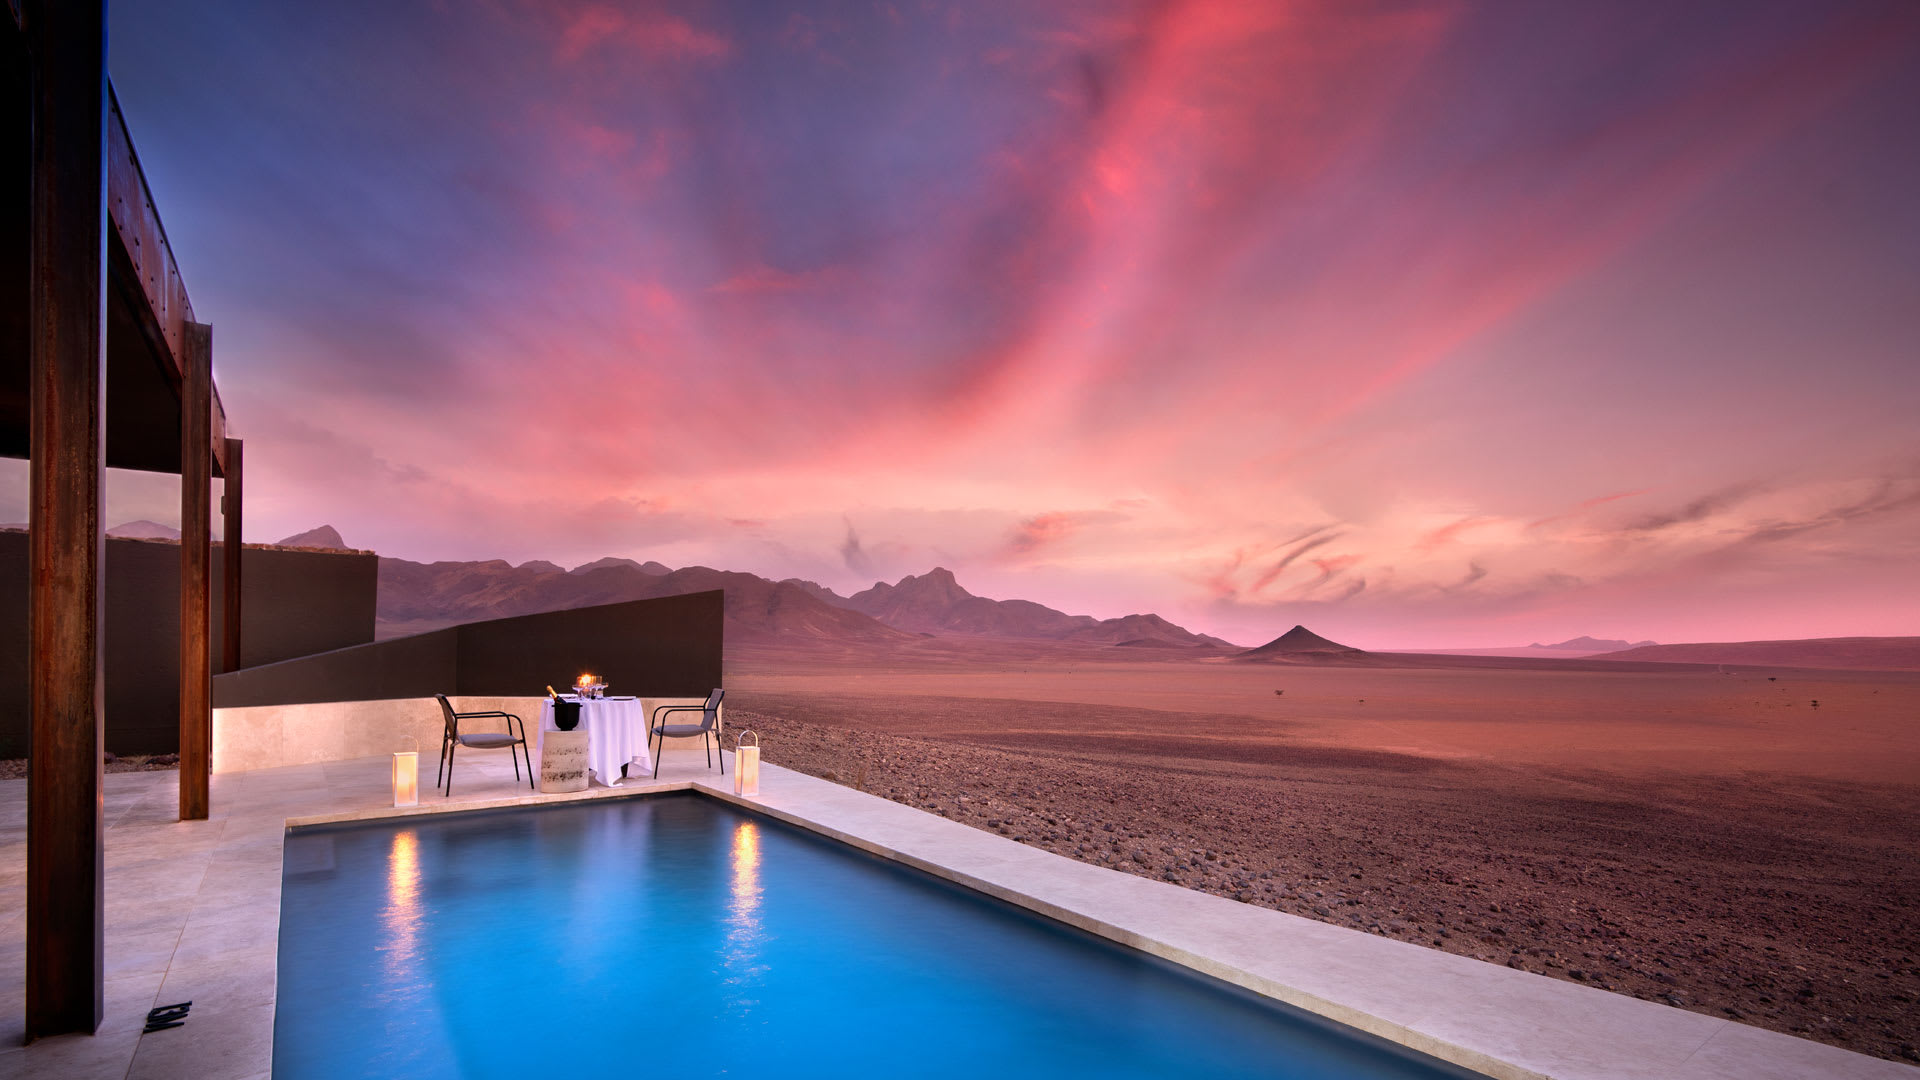 Swimming pool with te desert in the background as the sunsets with a pink sky